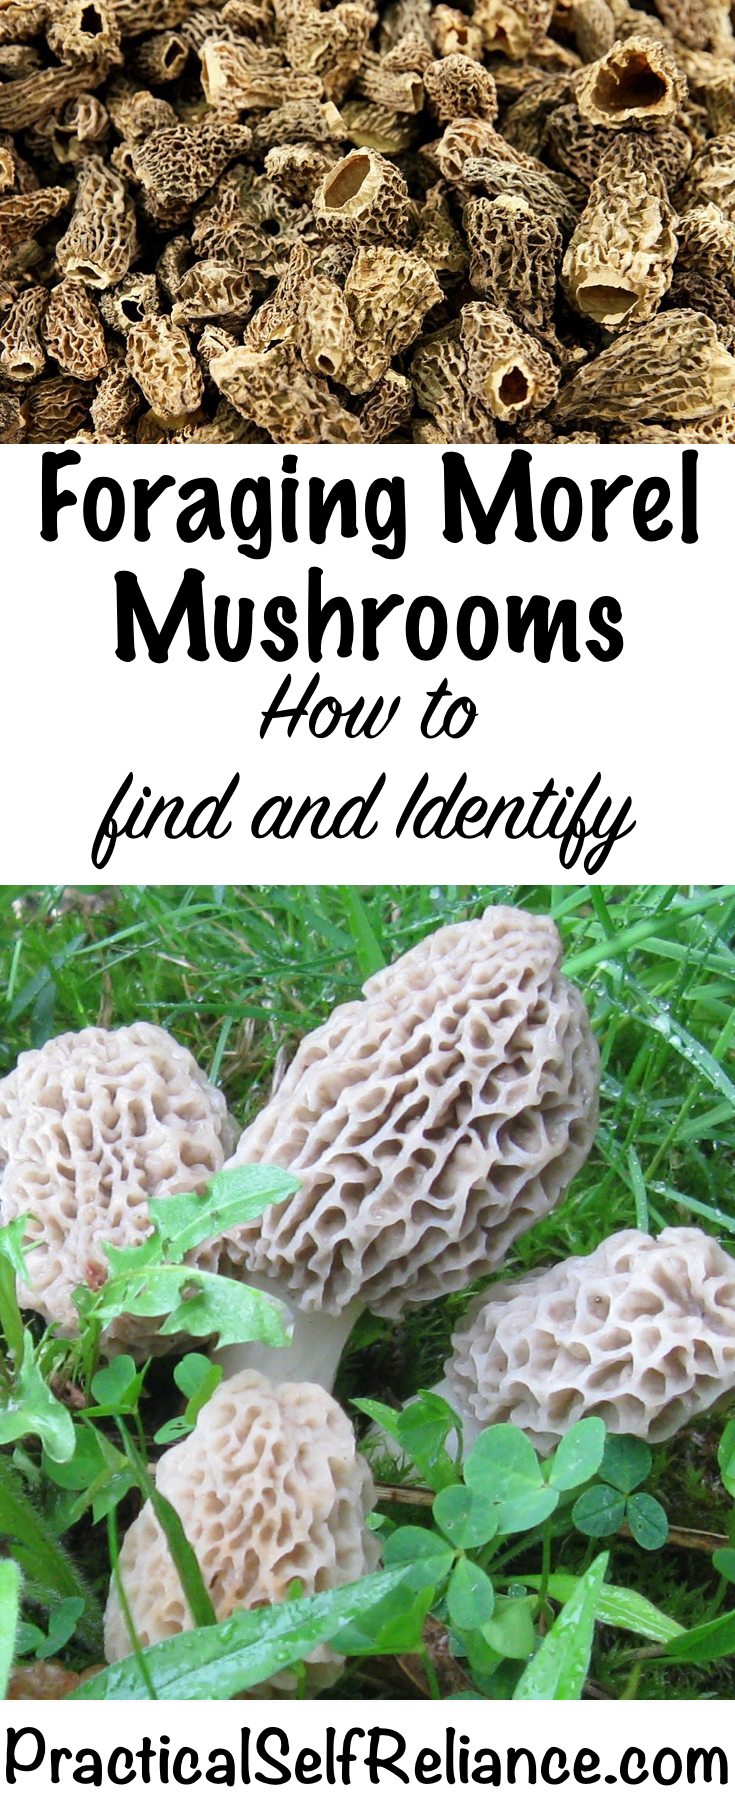 Foraging Morel Mushrooms - How to Find and Identify Morels #morels #morelmushrooms #mushrooms #foraging #wildfood #forage #selfsufficiency #wildcrafting #foragemushrooms #ediblemushrooms